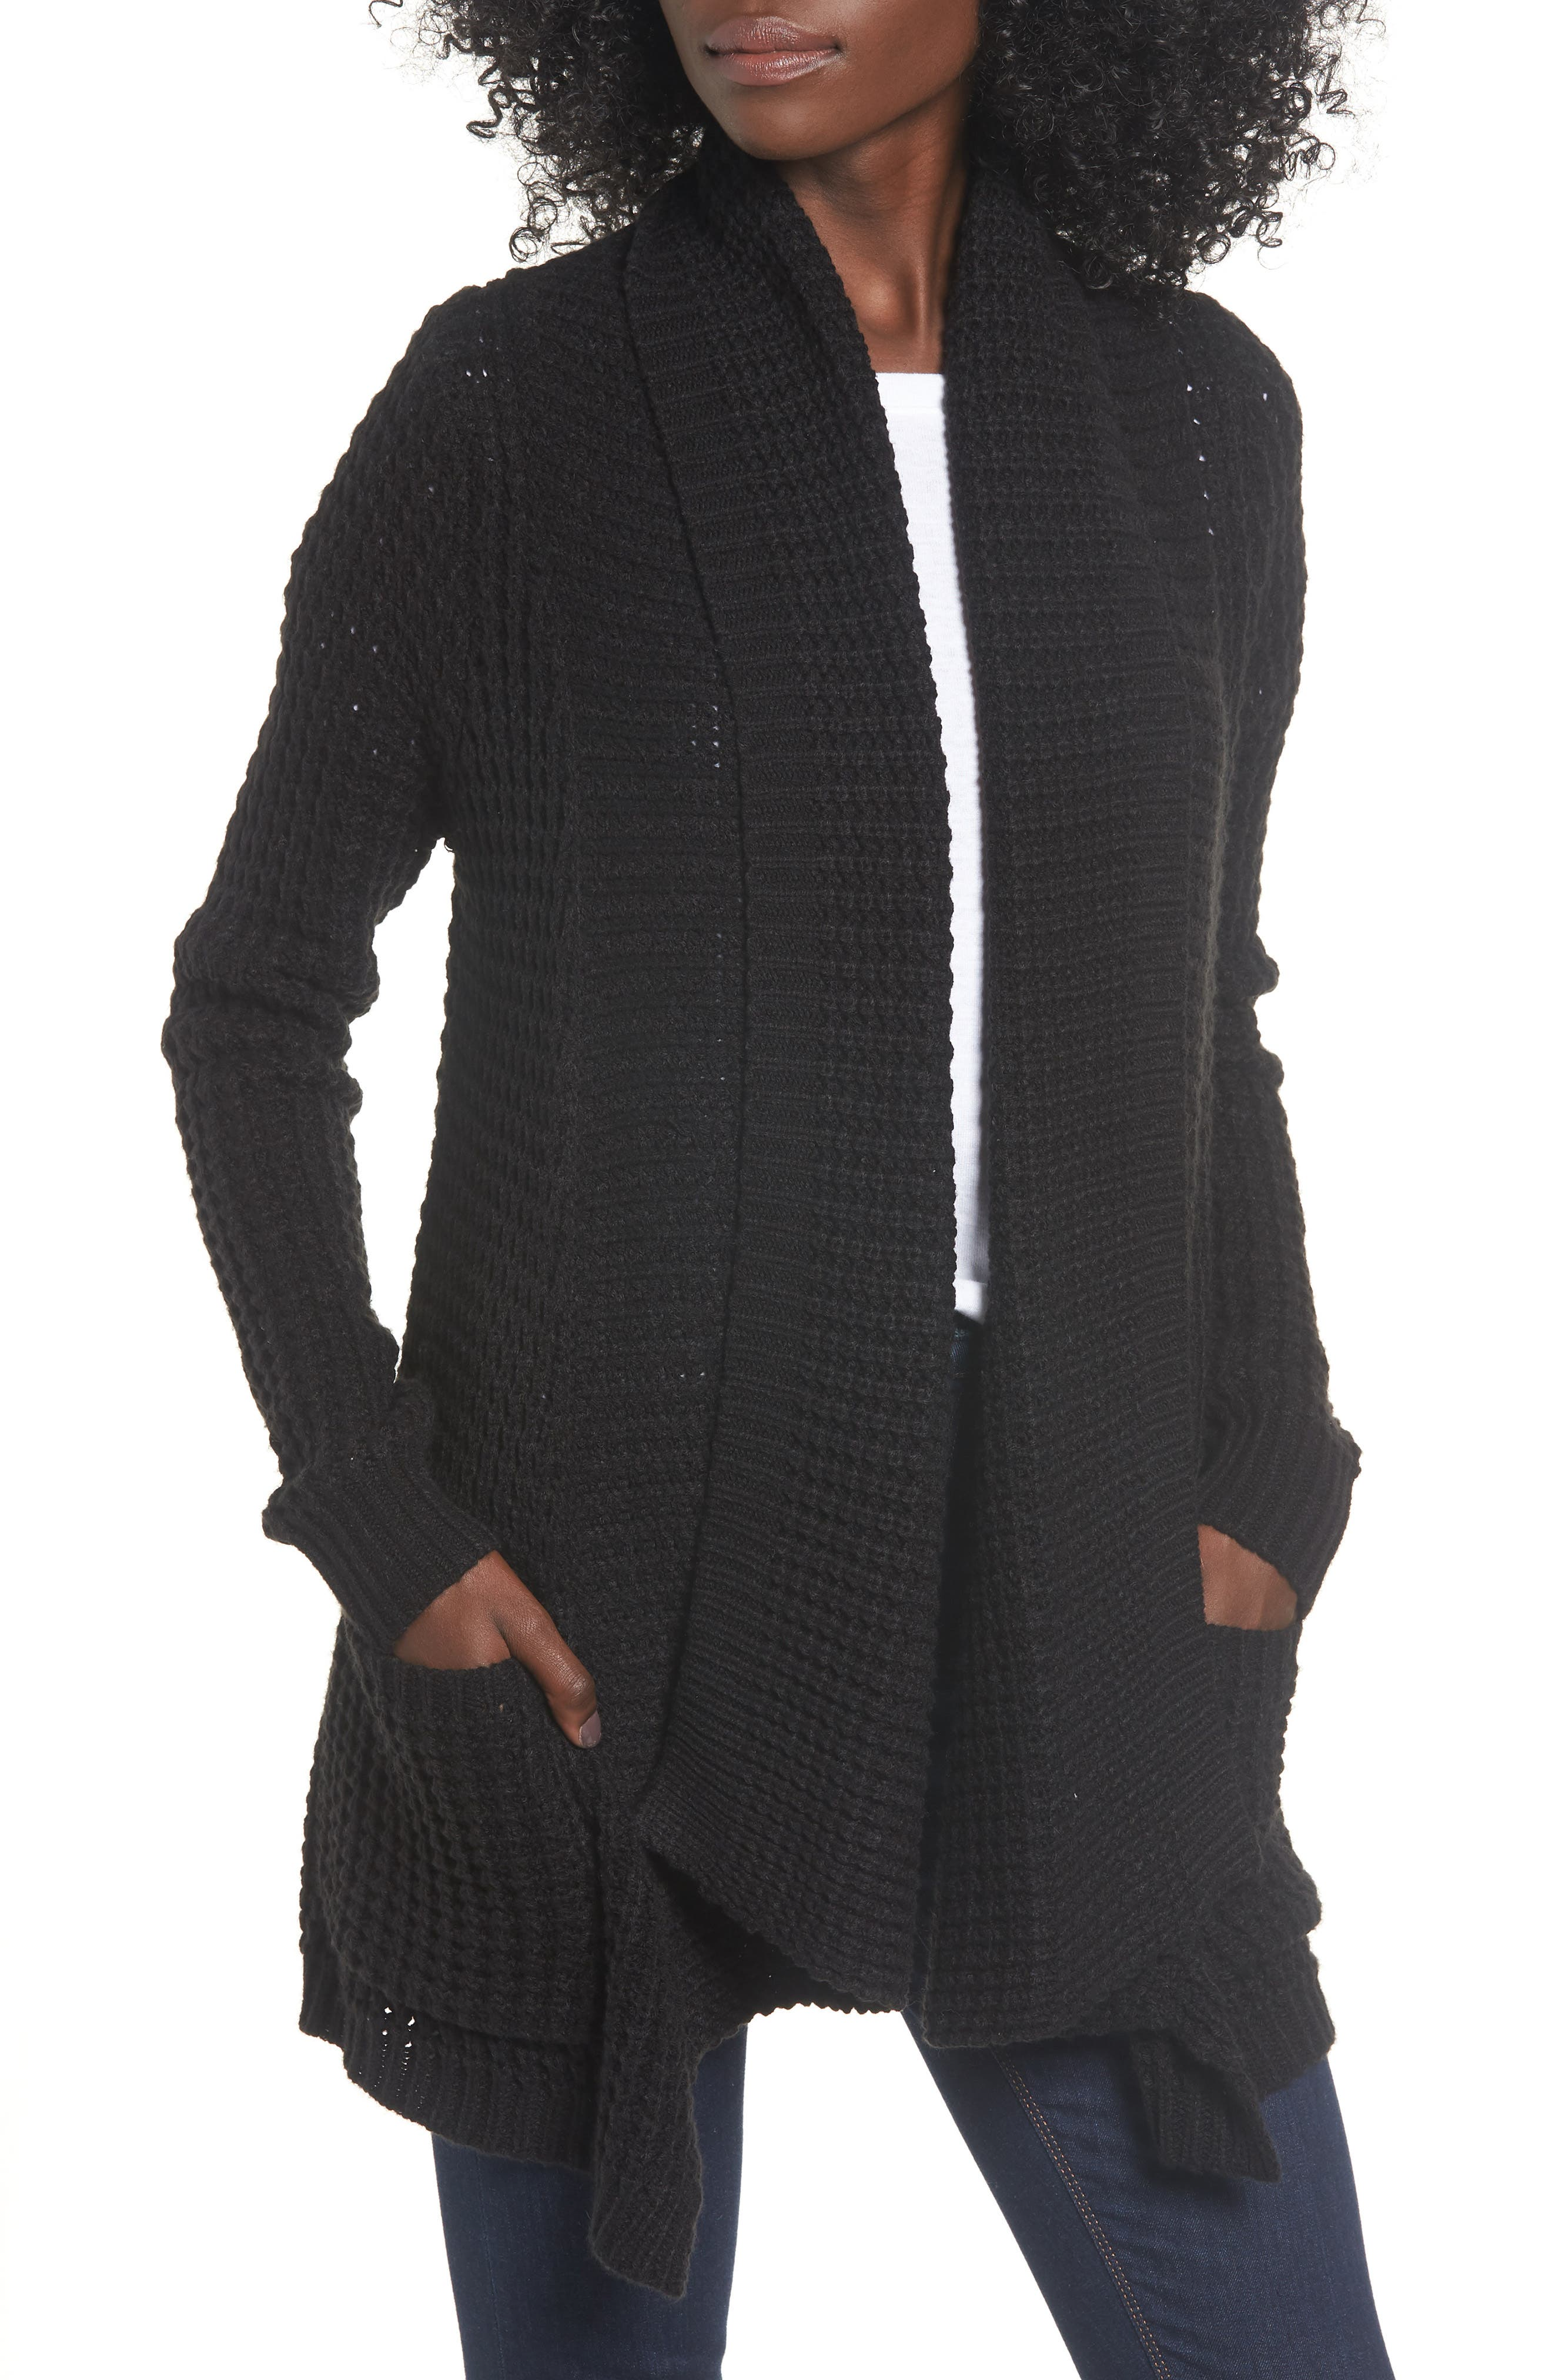 Shambala Knit Cardigan,                             Main thumbnail 1, color,                             BLACK